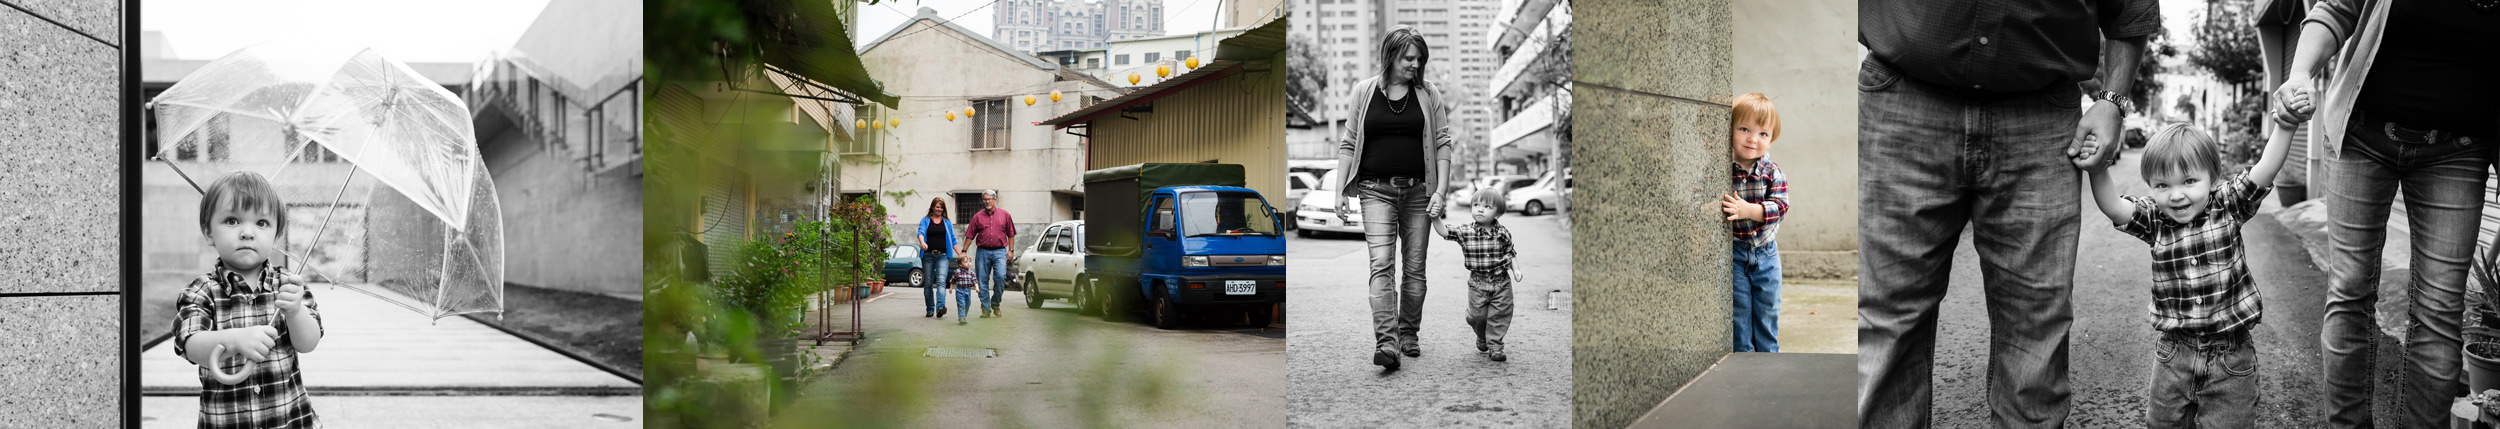 family_lifestyle_city_photo_session_collage_in_taiwan_by_hunnicutt_photography.jpg